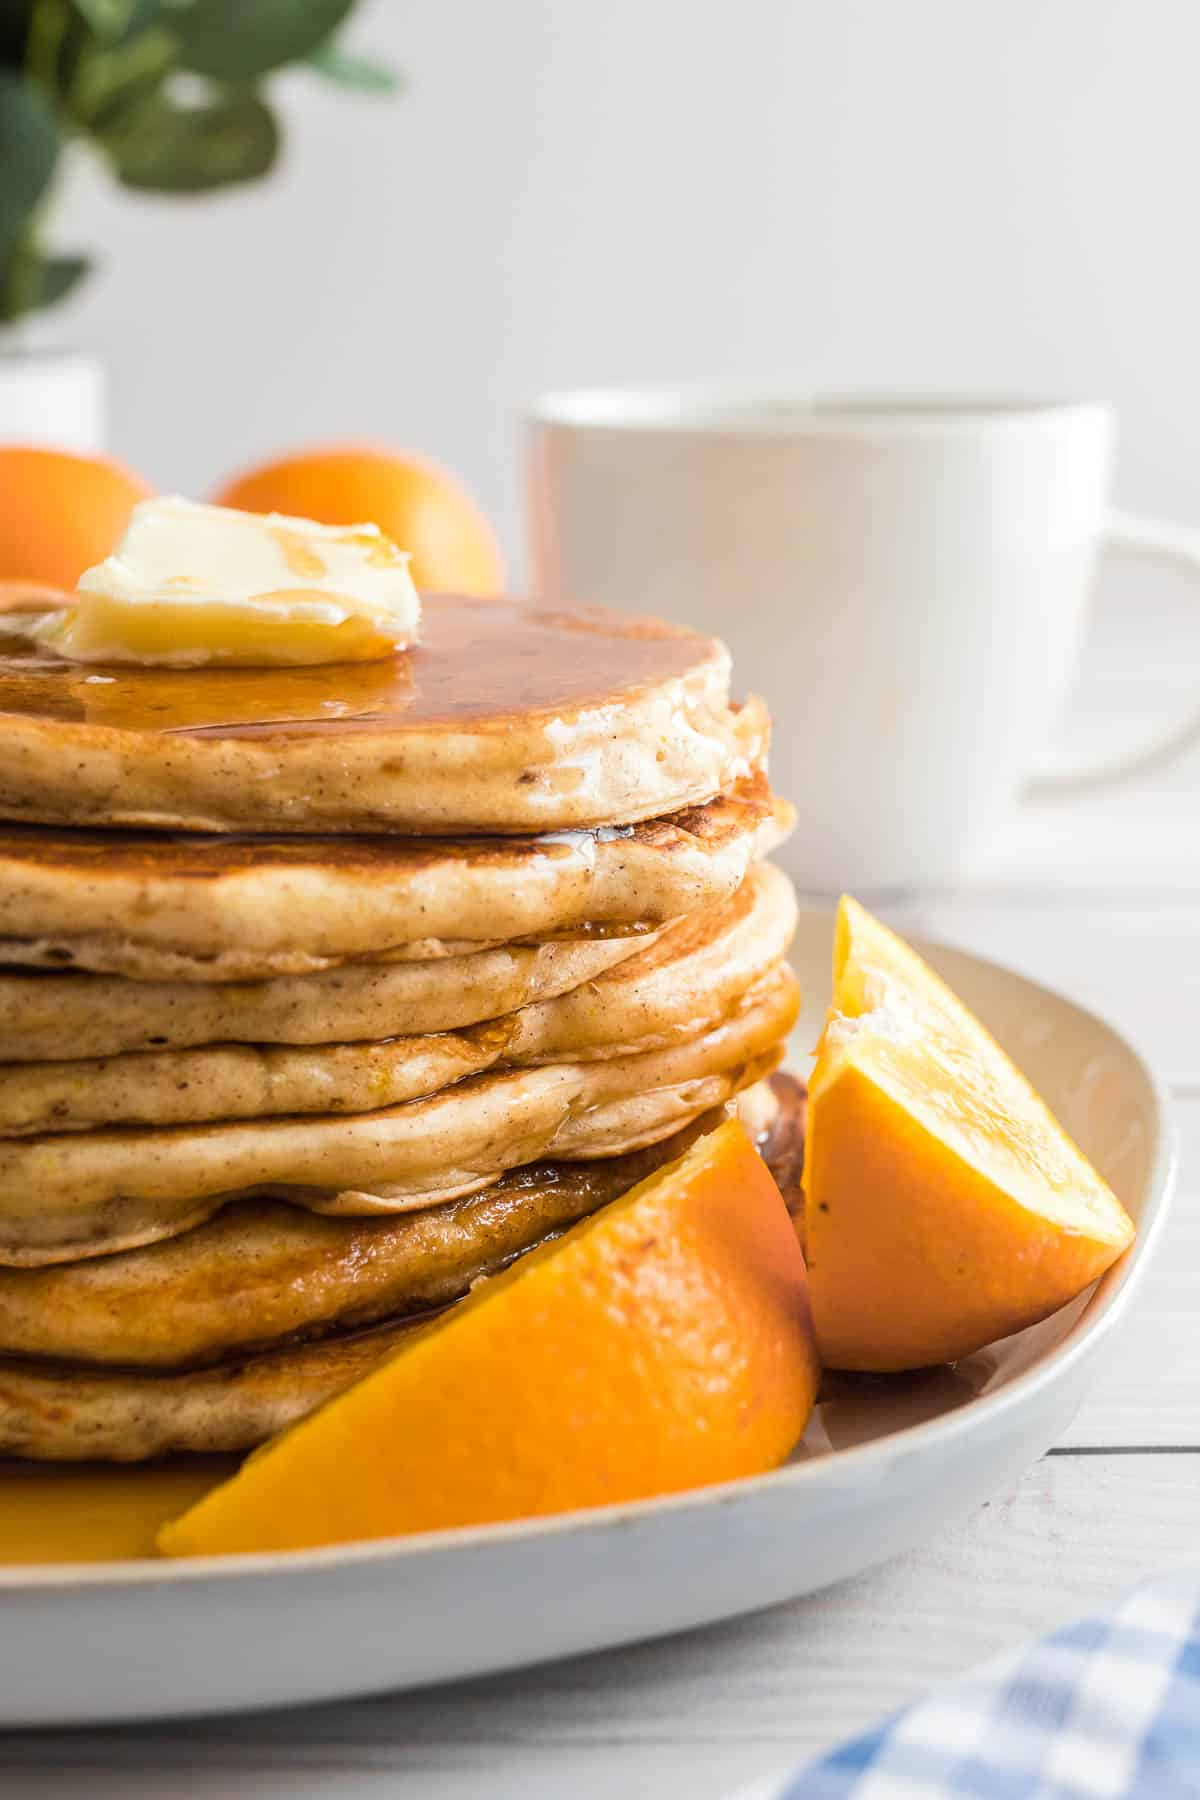 Stack of orange buttermilk pancakes on a plate with orange wedges.